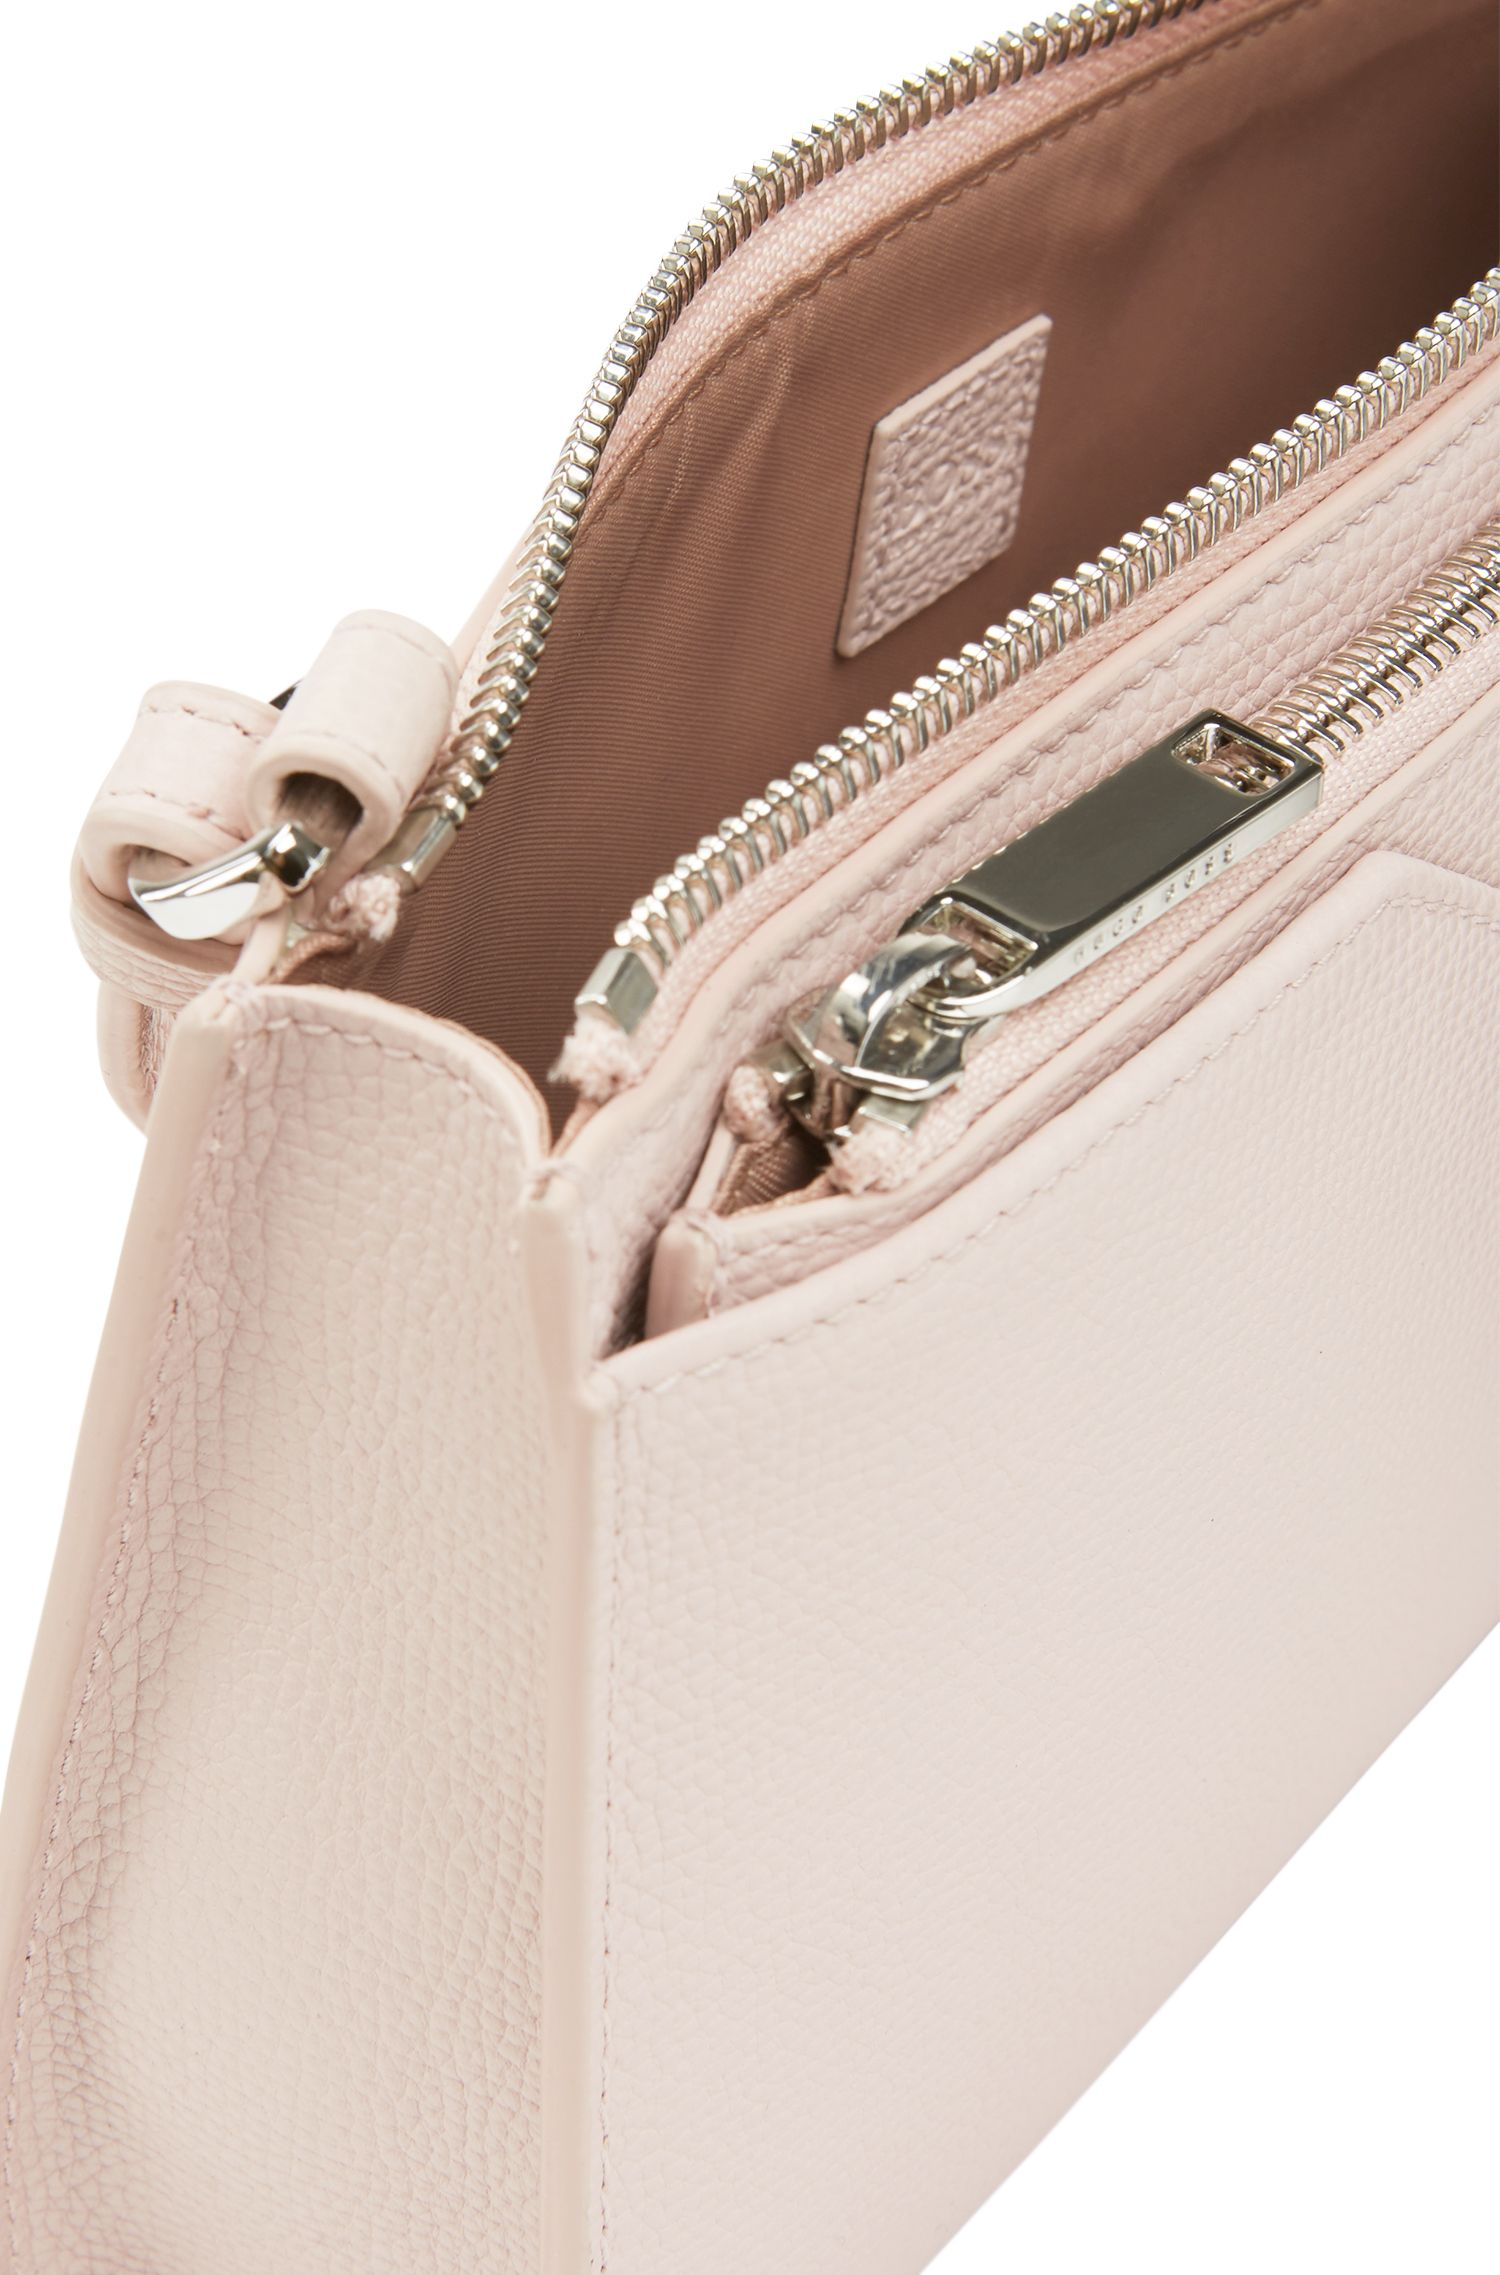 Italian calf-leather shoulder bag with removable pouch, light pink